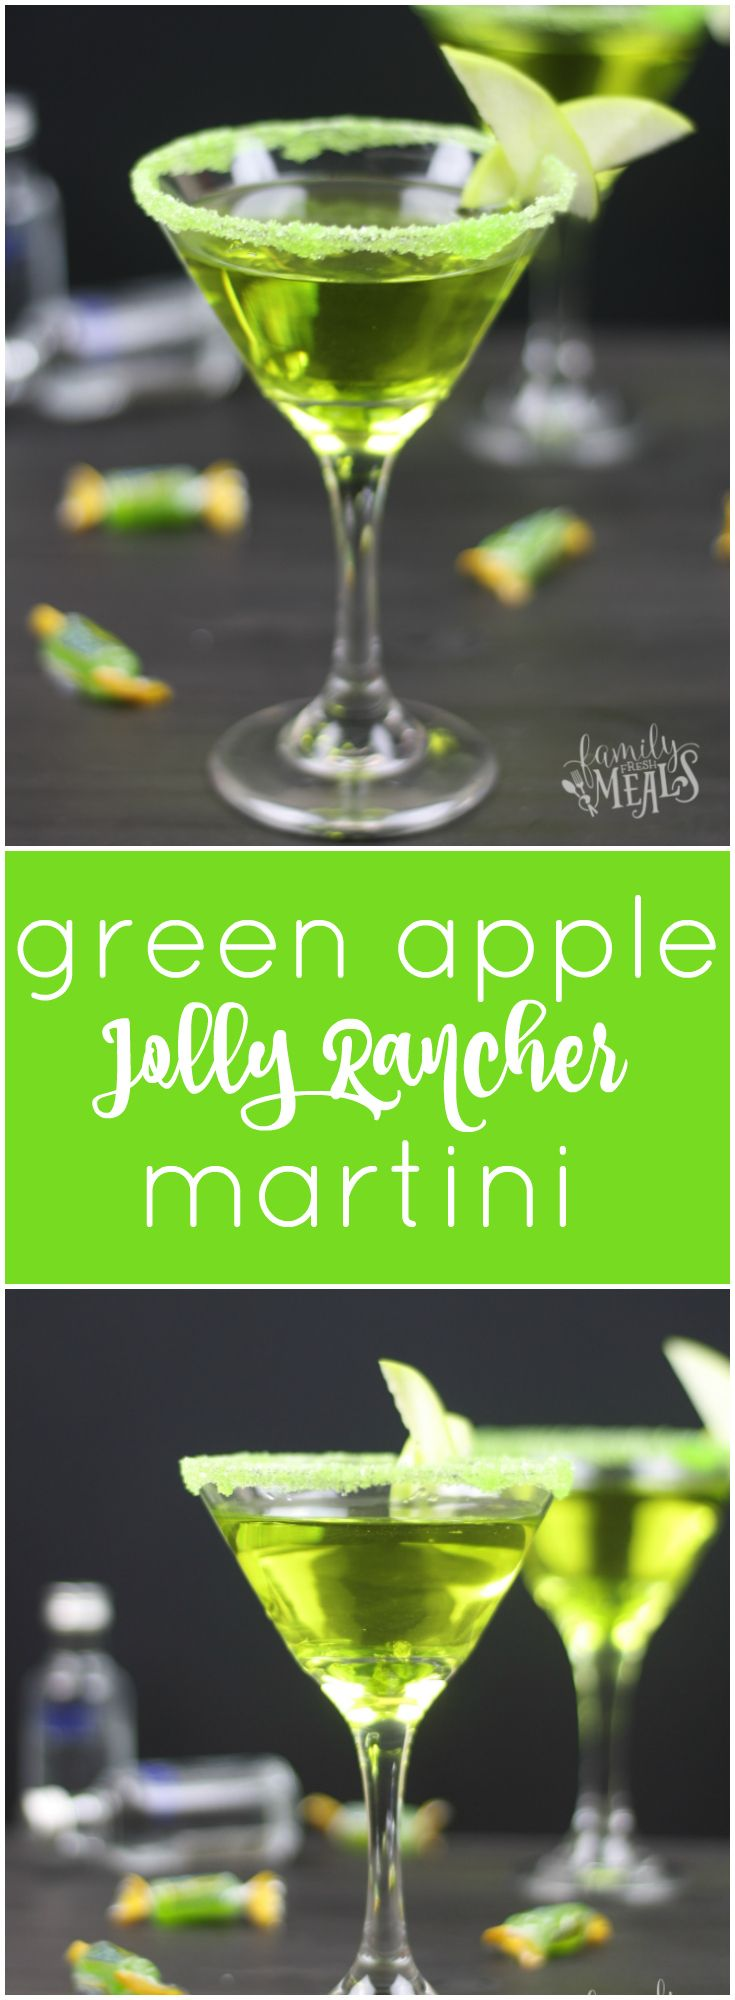 Jolly Rancher Green Apple Martini - FamilyFreshMeals.com - Pinterest -